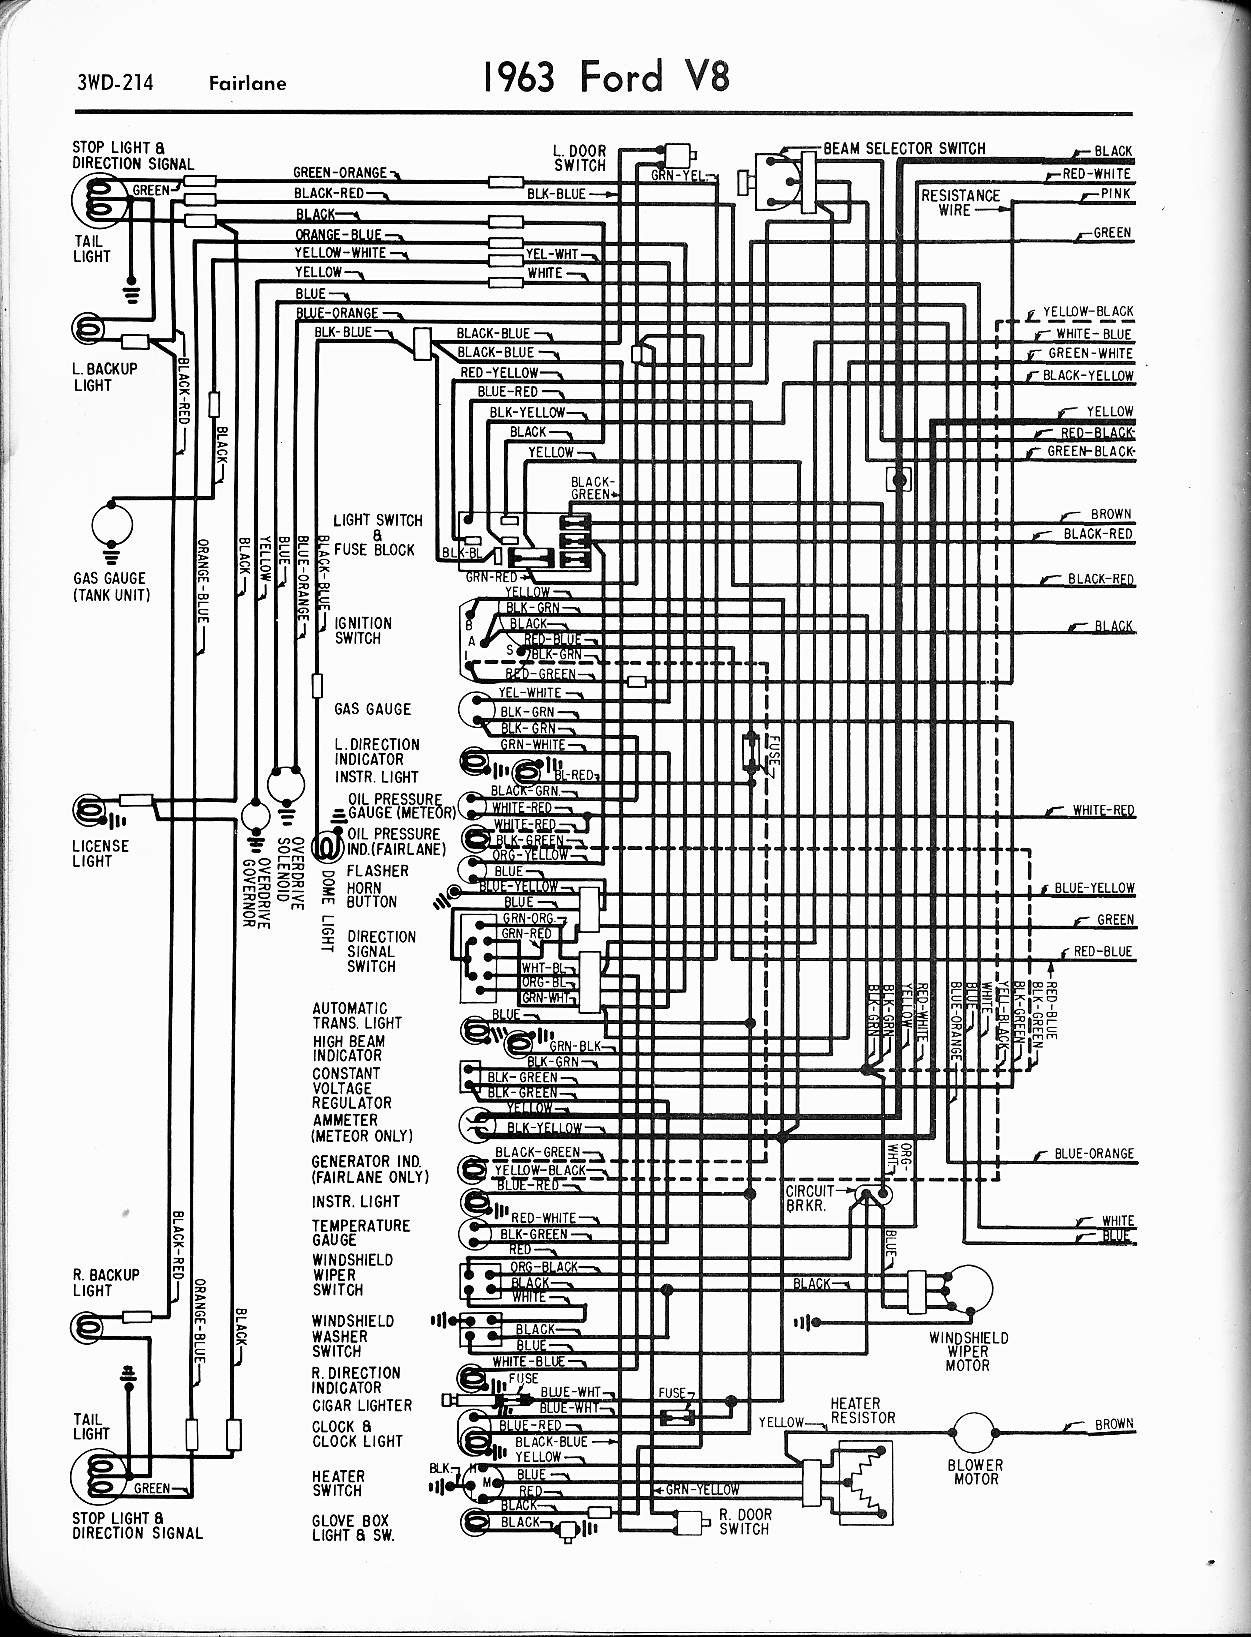 ford fairlane wiring diagram daily update wiring diagram 1970 Mercury Cougar Wiring Diagram